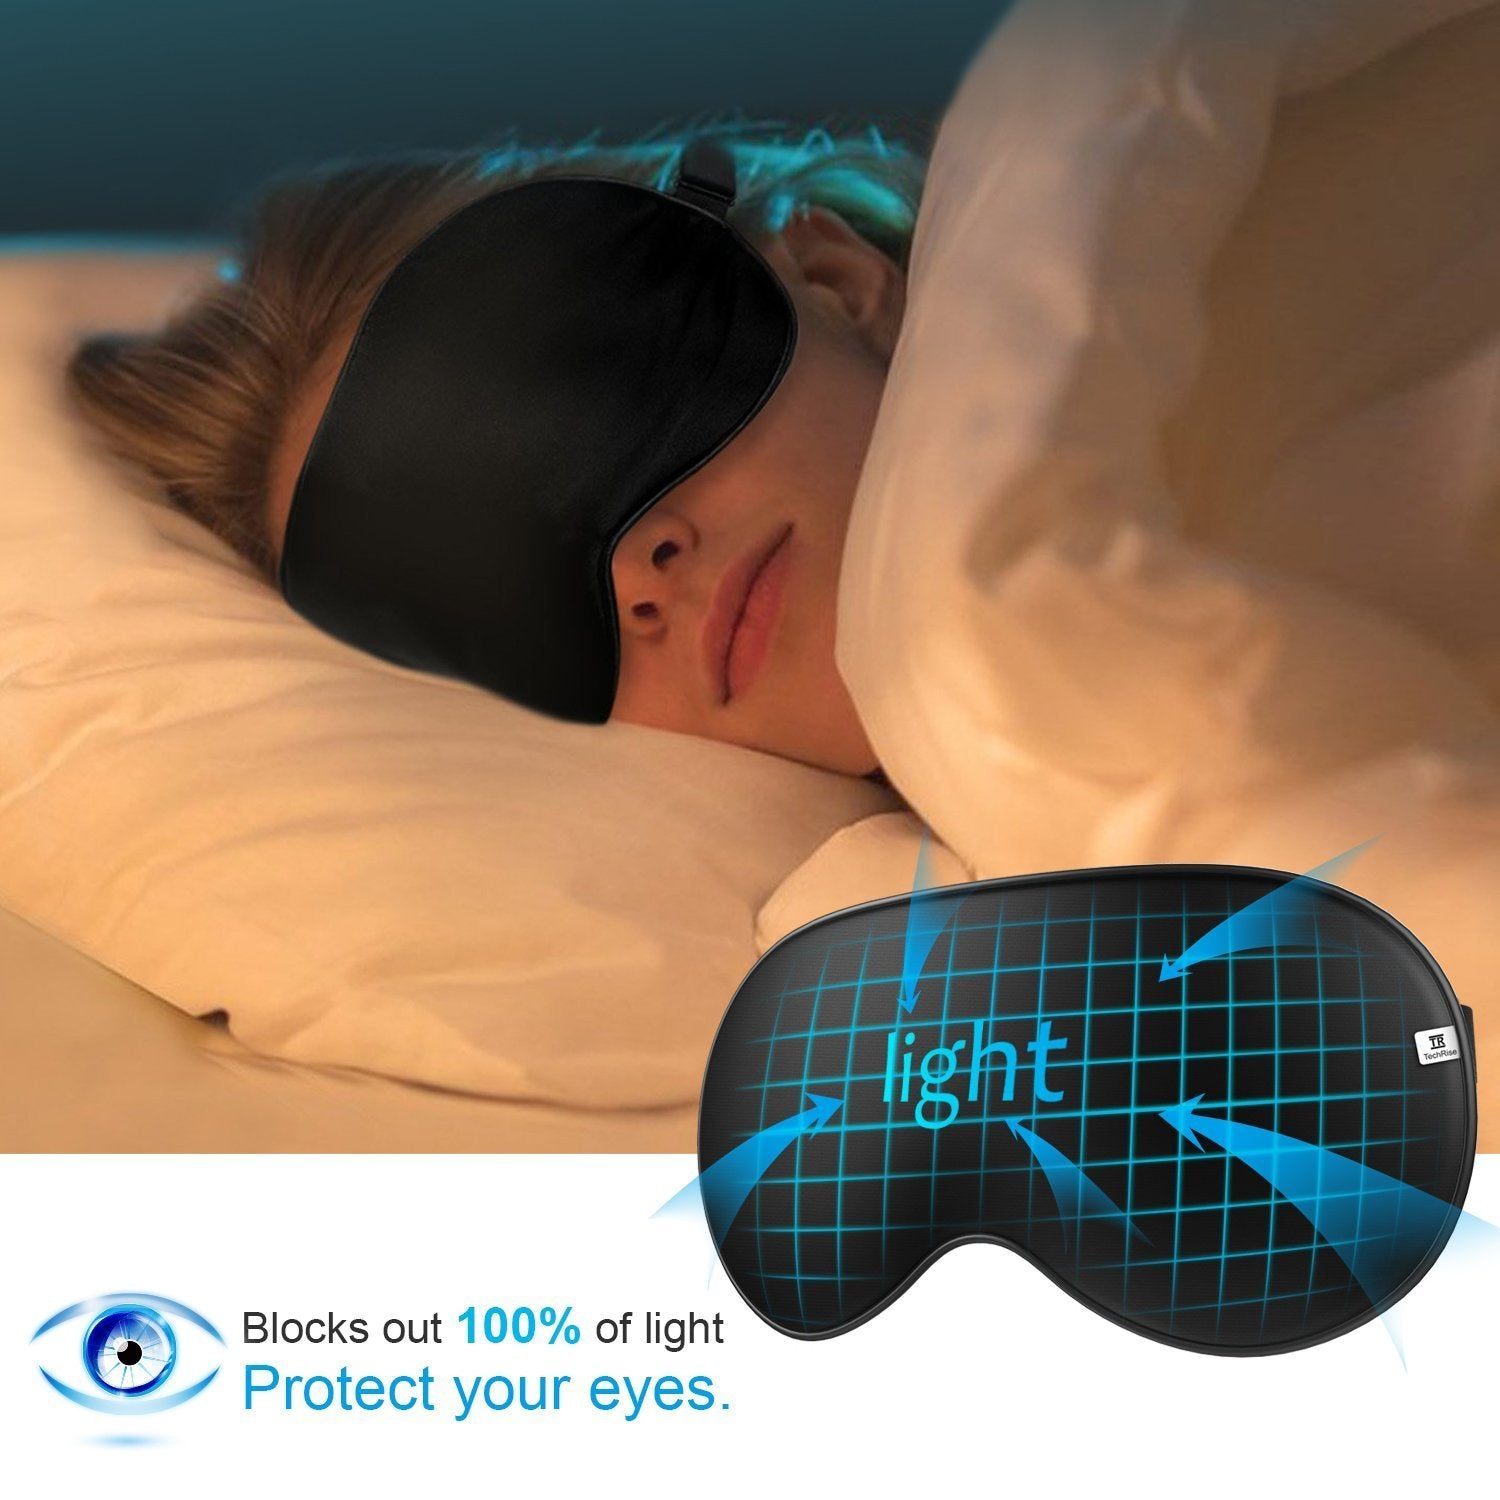 Sleep Mask Ultra Soft 100% Natural Silk - Teddith Blue Light Glasses Computer Glasses Gaming Reading Glasses Anti Glare Reduce Eye Strain Screen Glasses